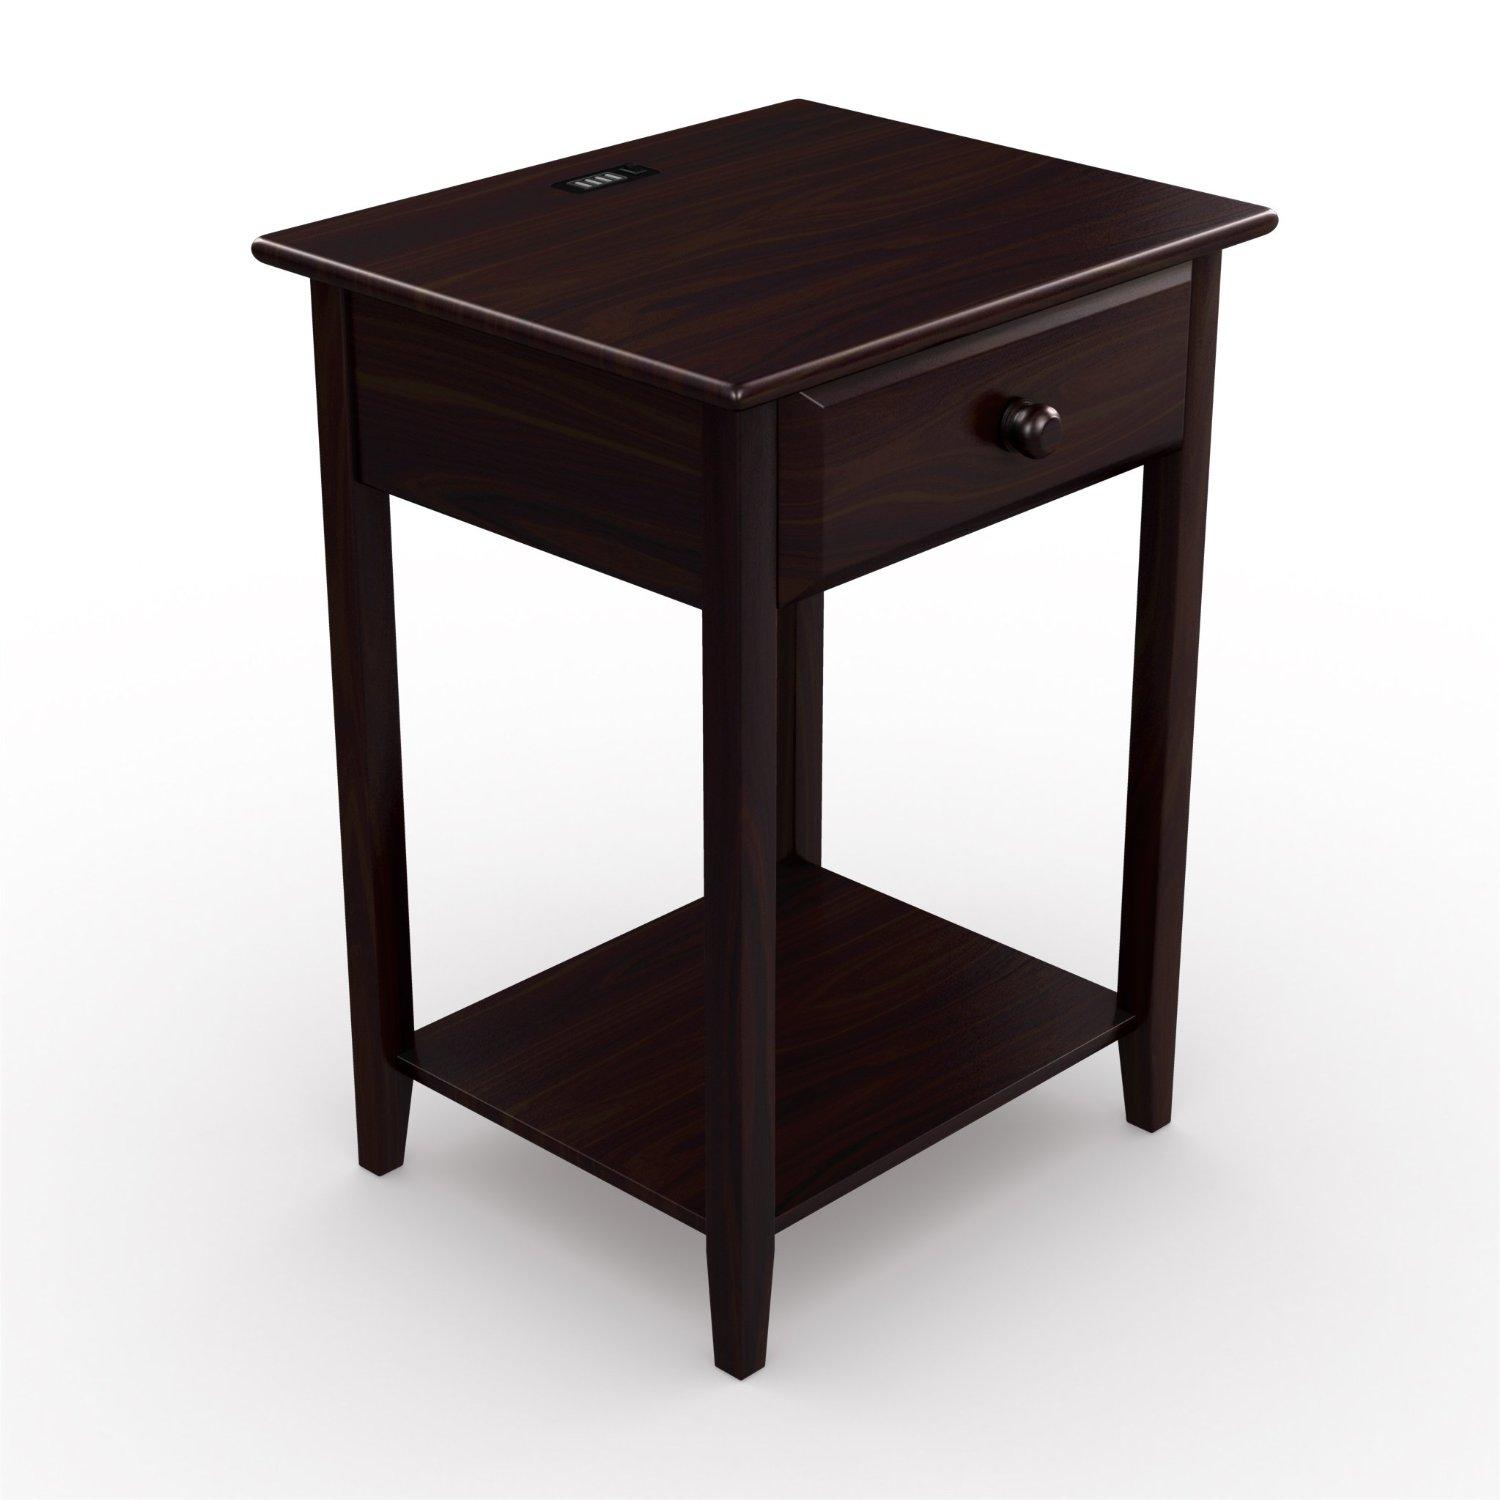 stony edge night stand end accent table with usb port espresso 17 home kitchen. Black Bedroom Furniture Sets. Home Design Ideas